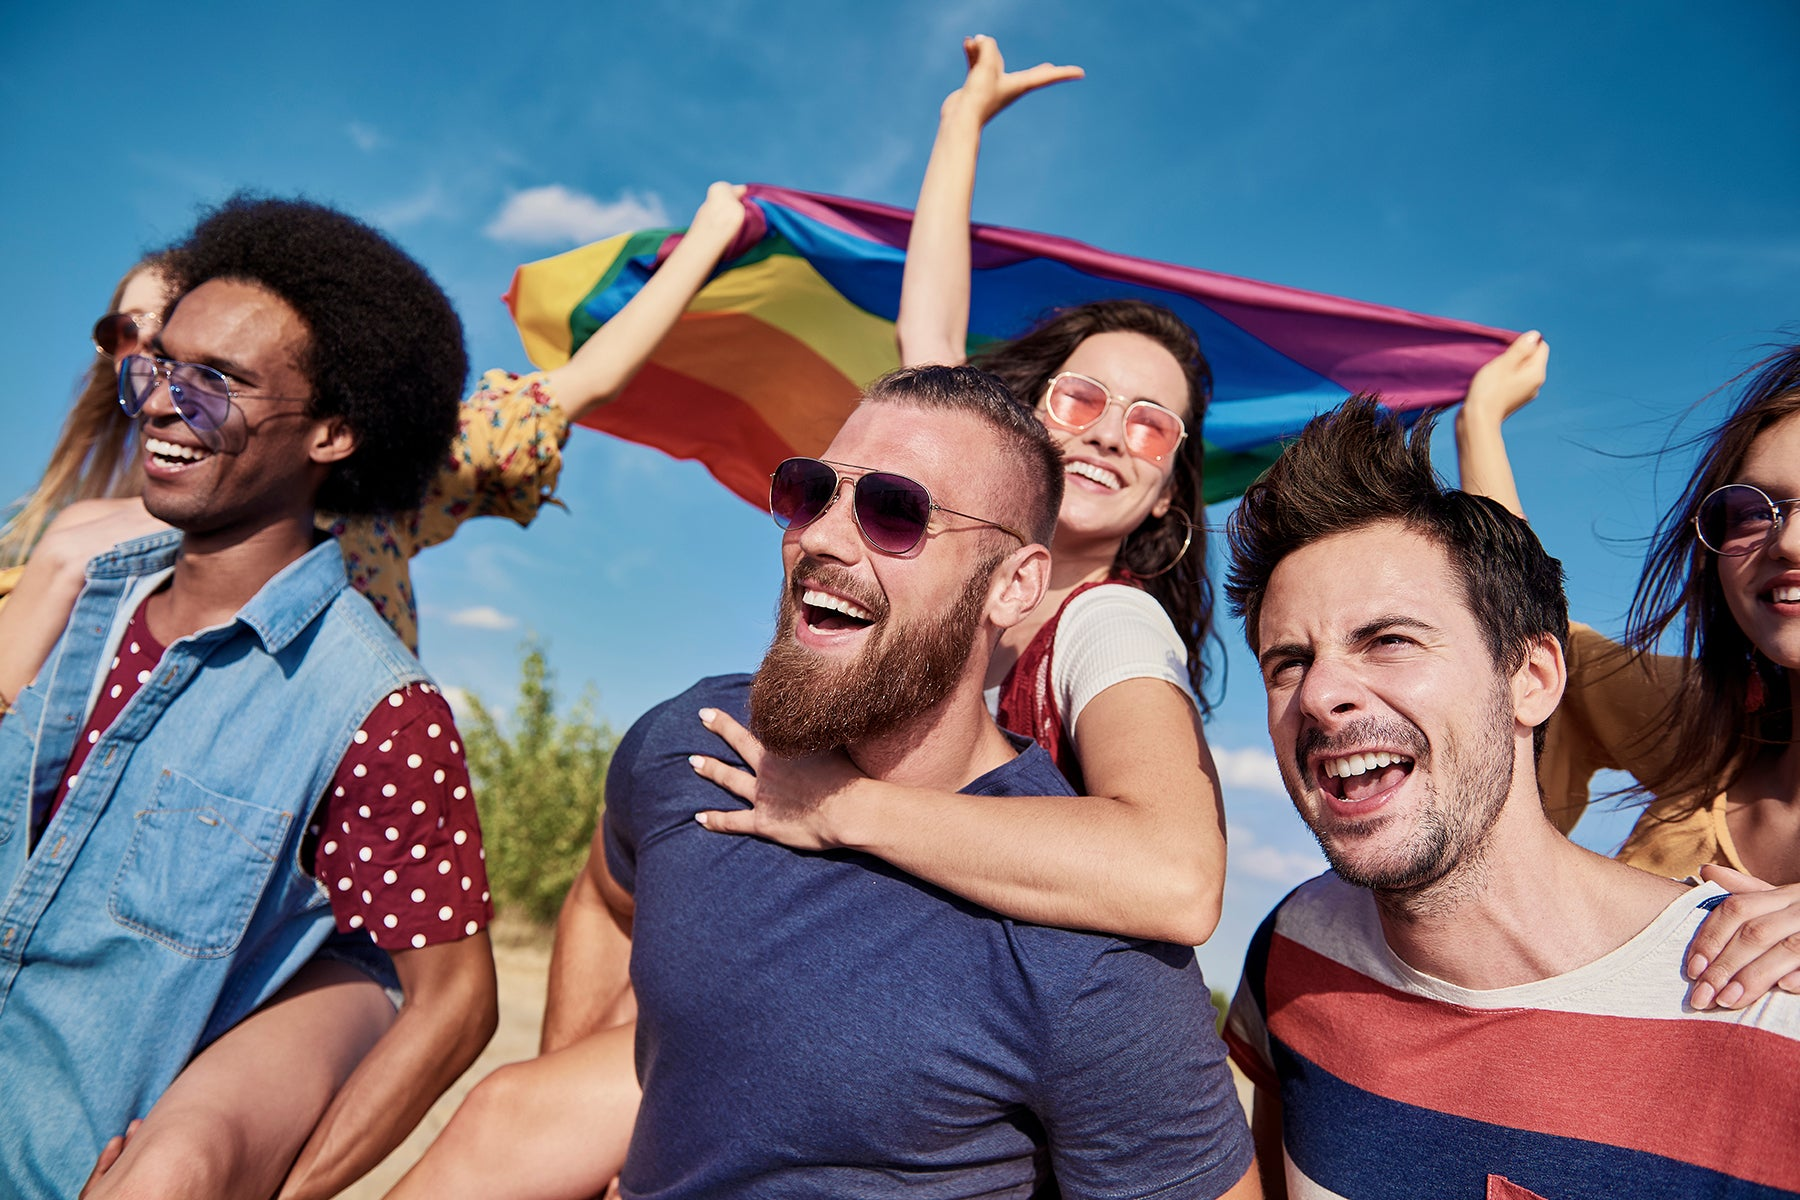 A group of friends celebrating pride, holding a rainbow flag in the air.